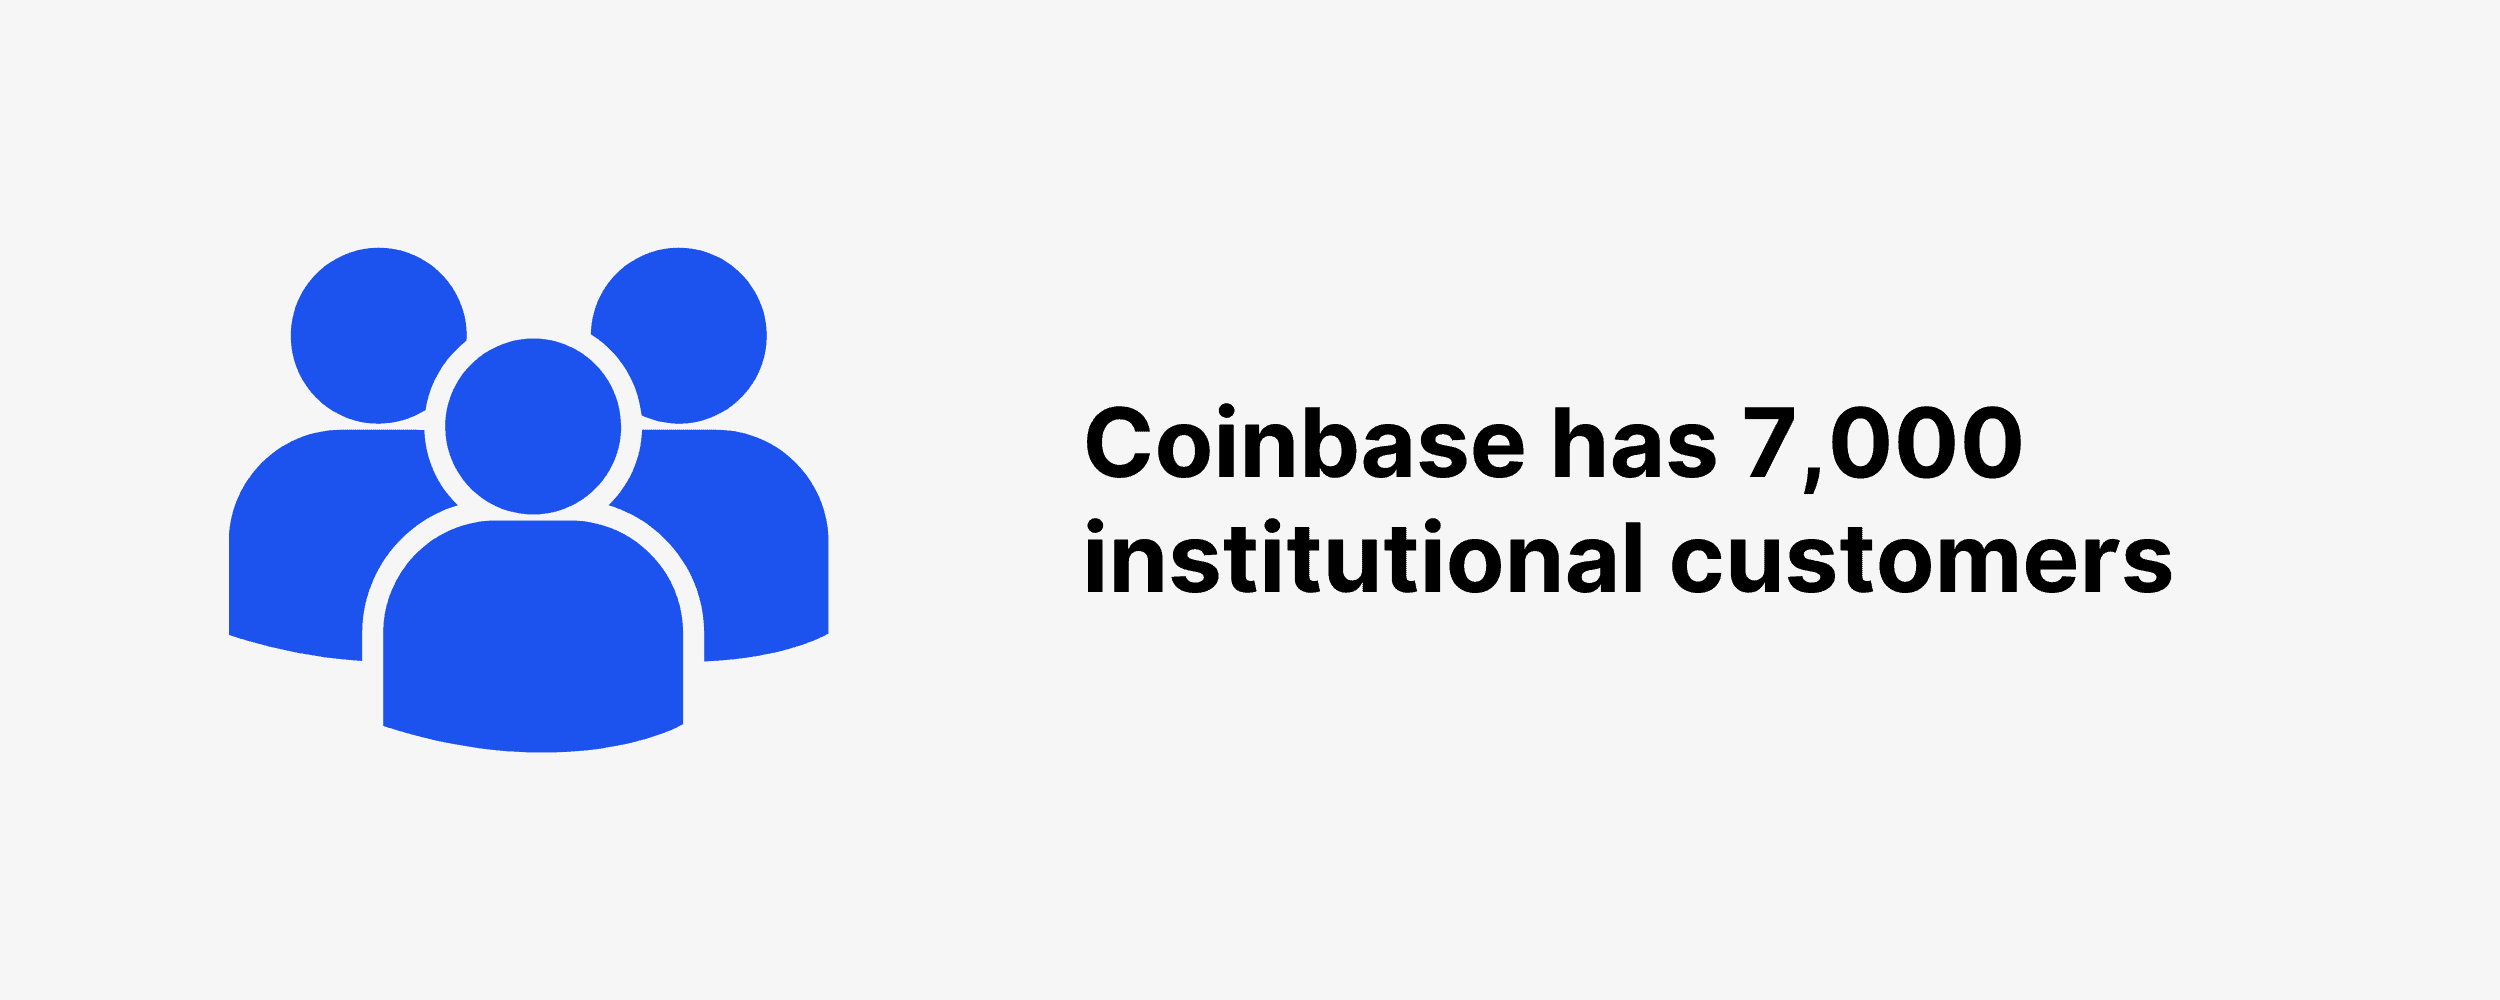 Coinbase has 7,000 institutional customers